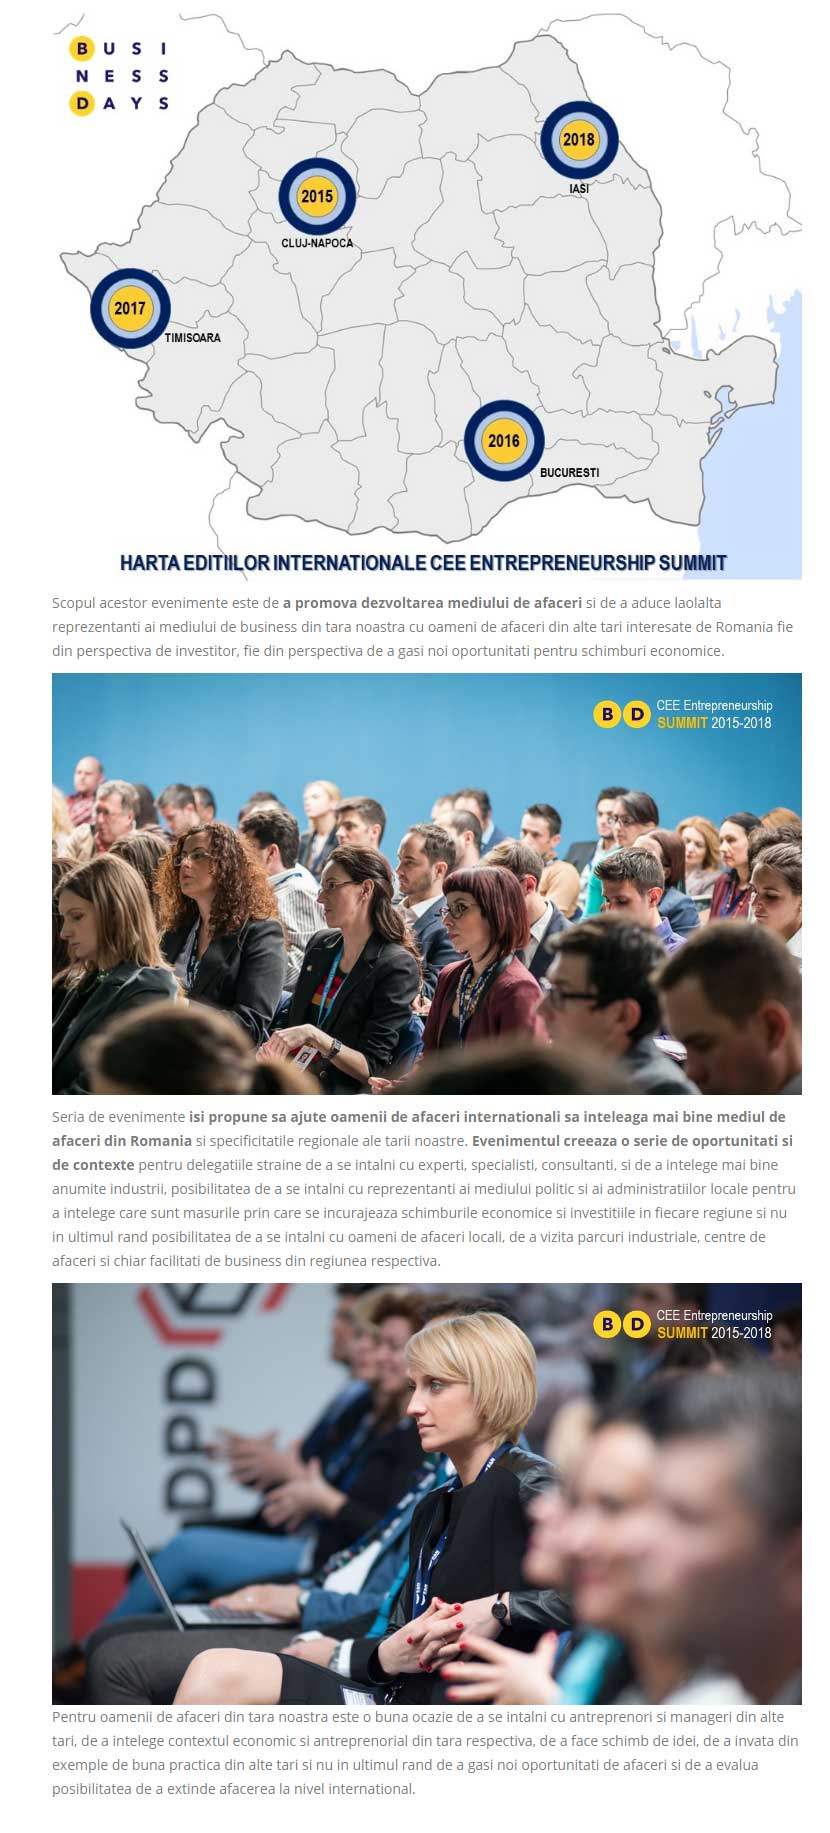 CEE Entrepreneurship Summit 2015-2018 1